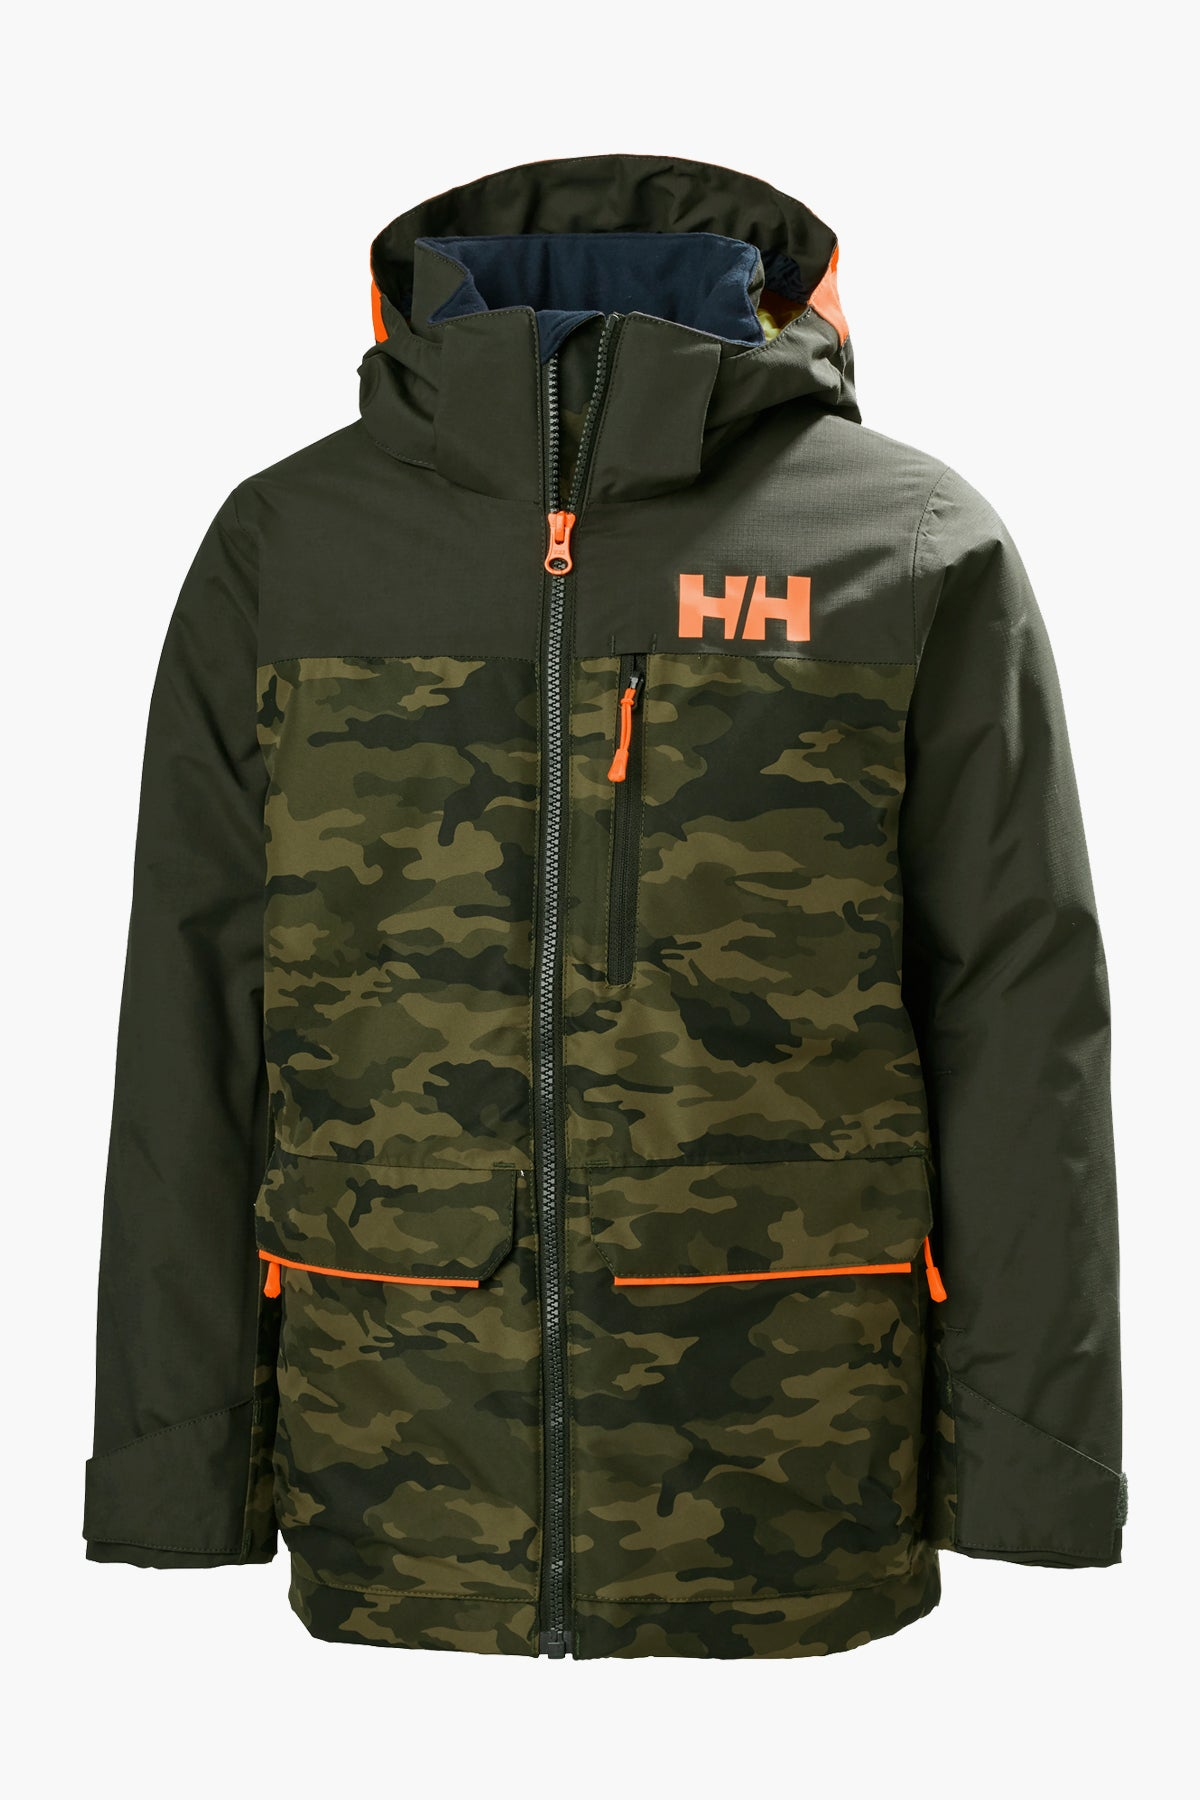 Helly Hansen Kids Jacket Tornado - Camo